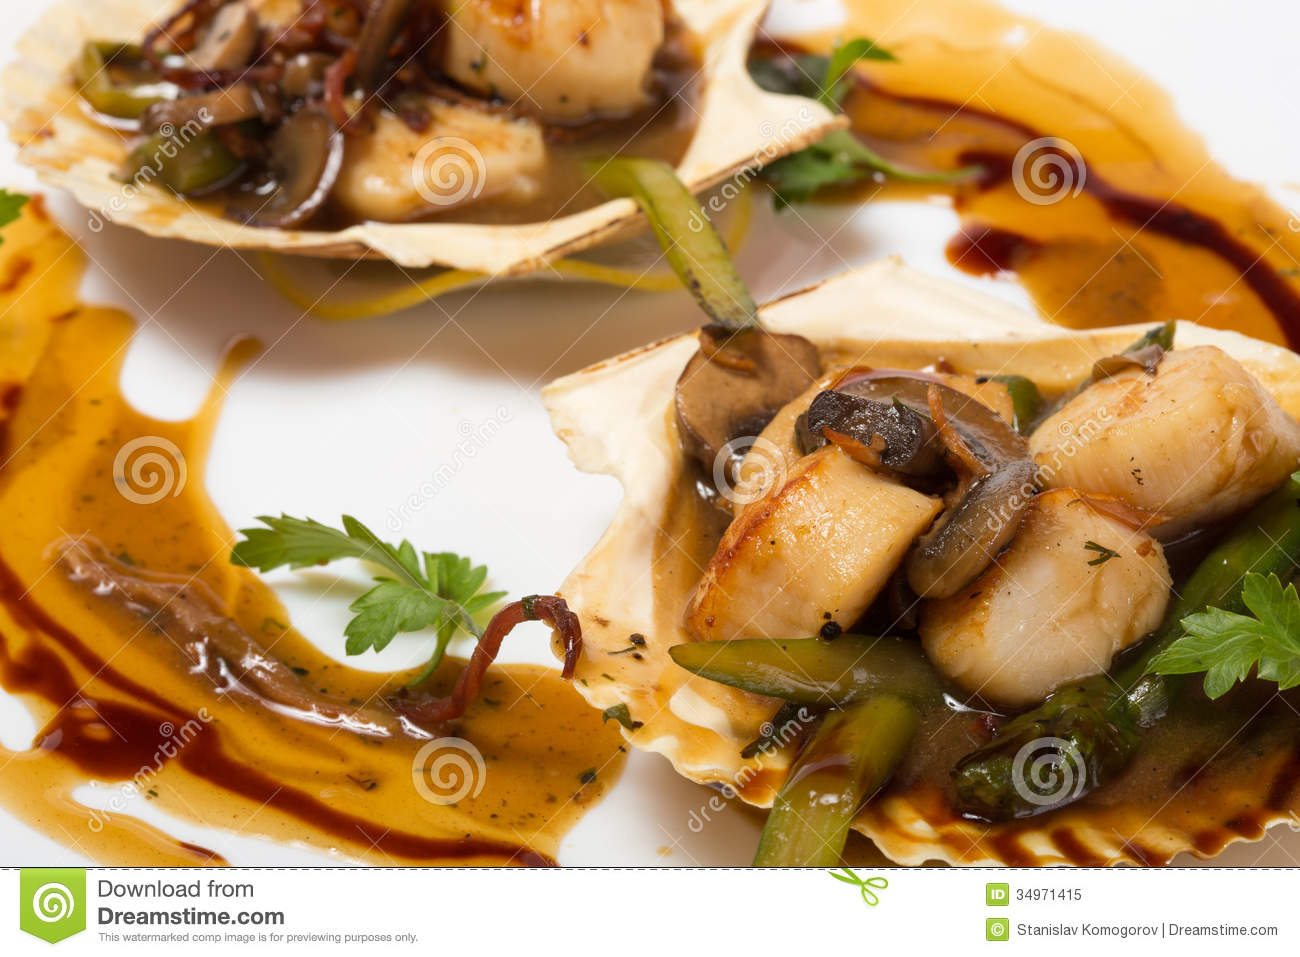 Scallops With Asparagus And Mushrooms Royalty Free Stock Photo - Image ...